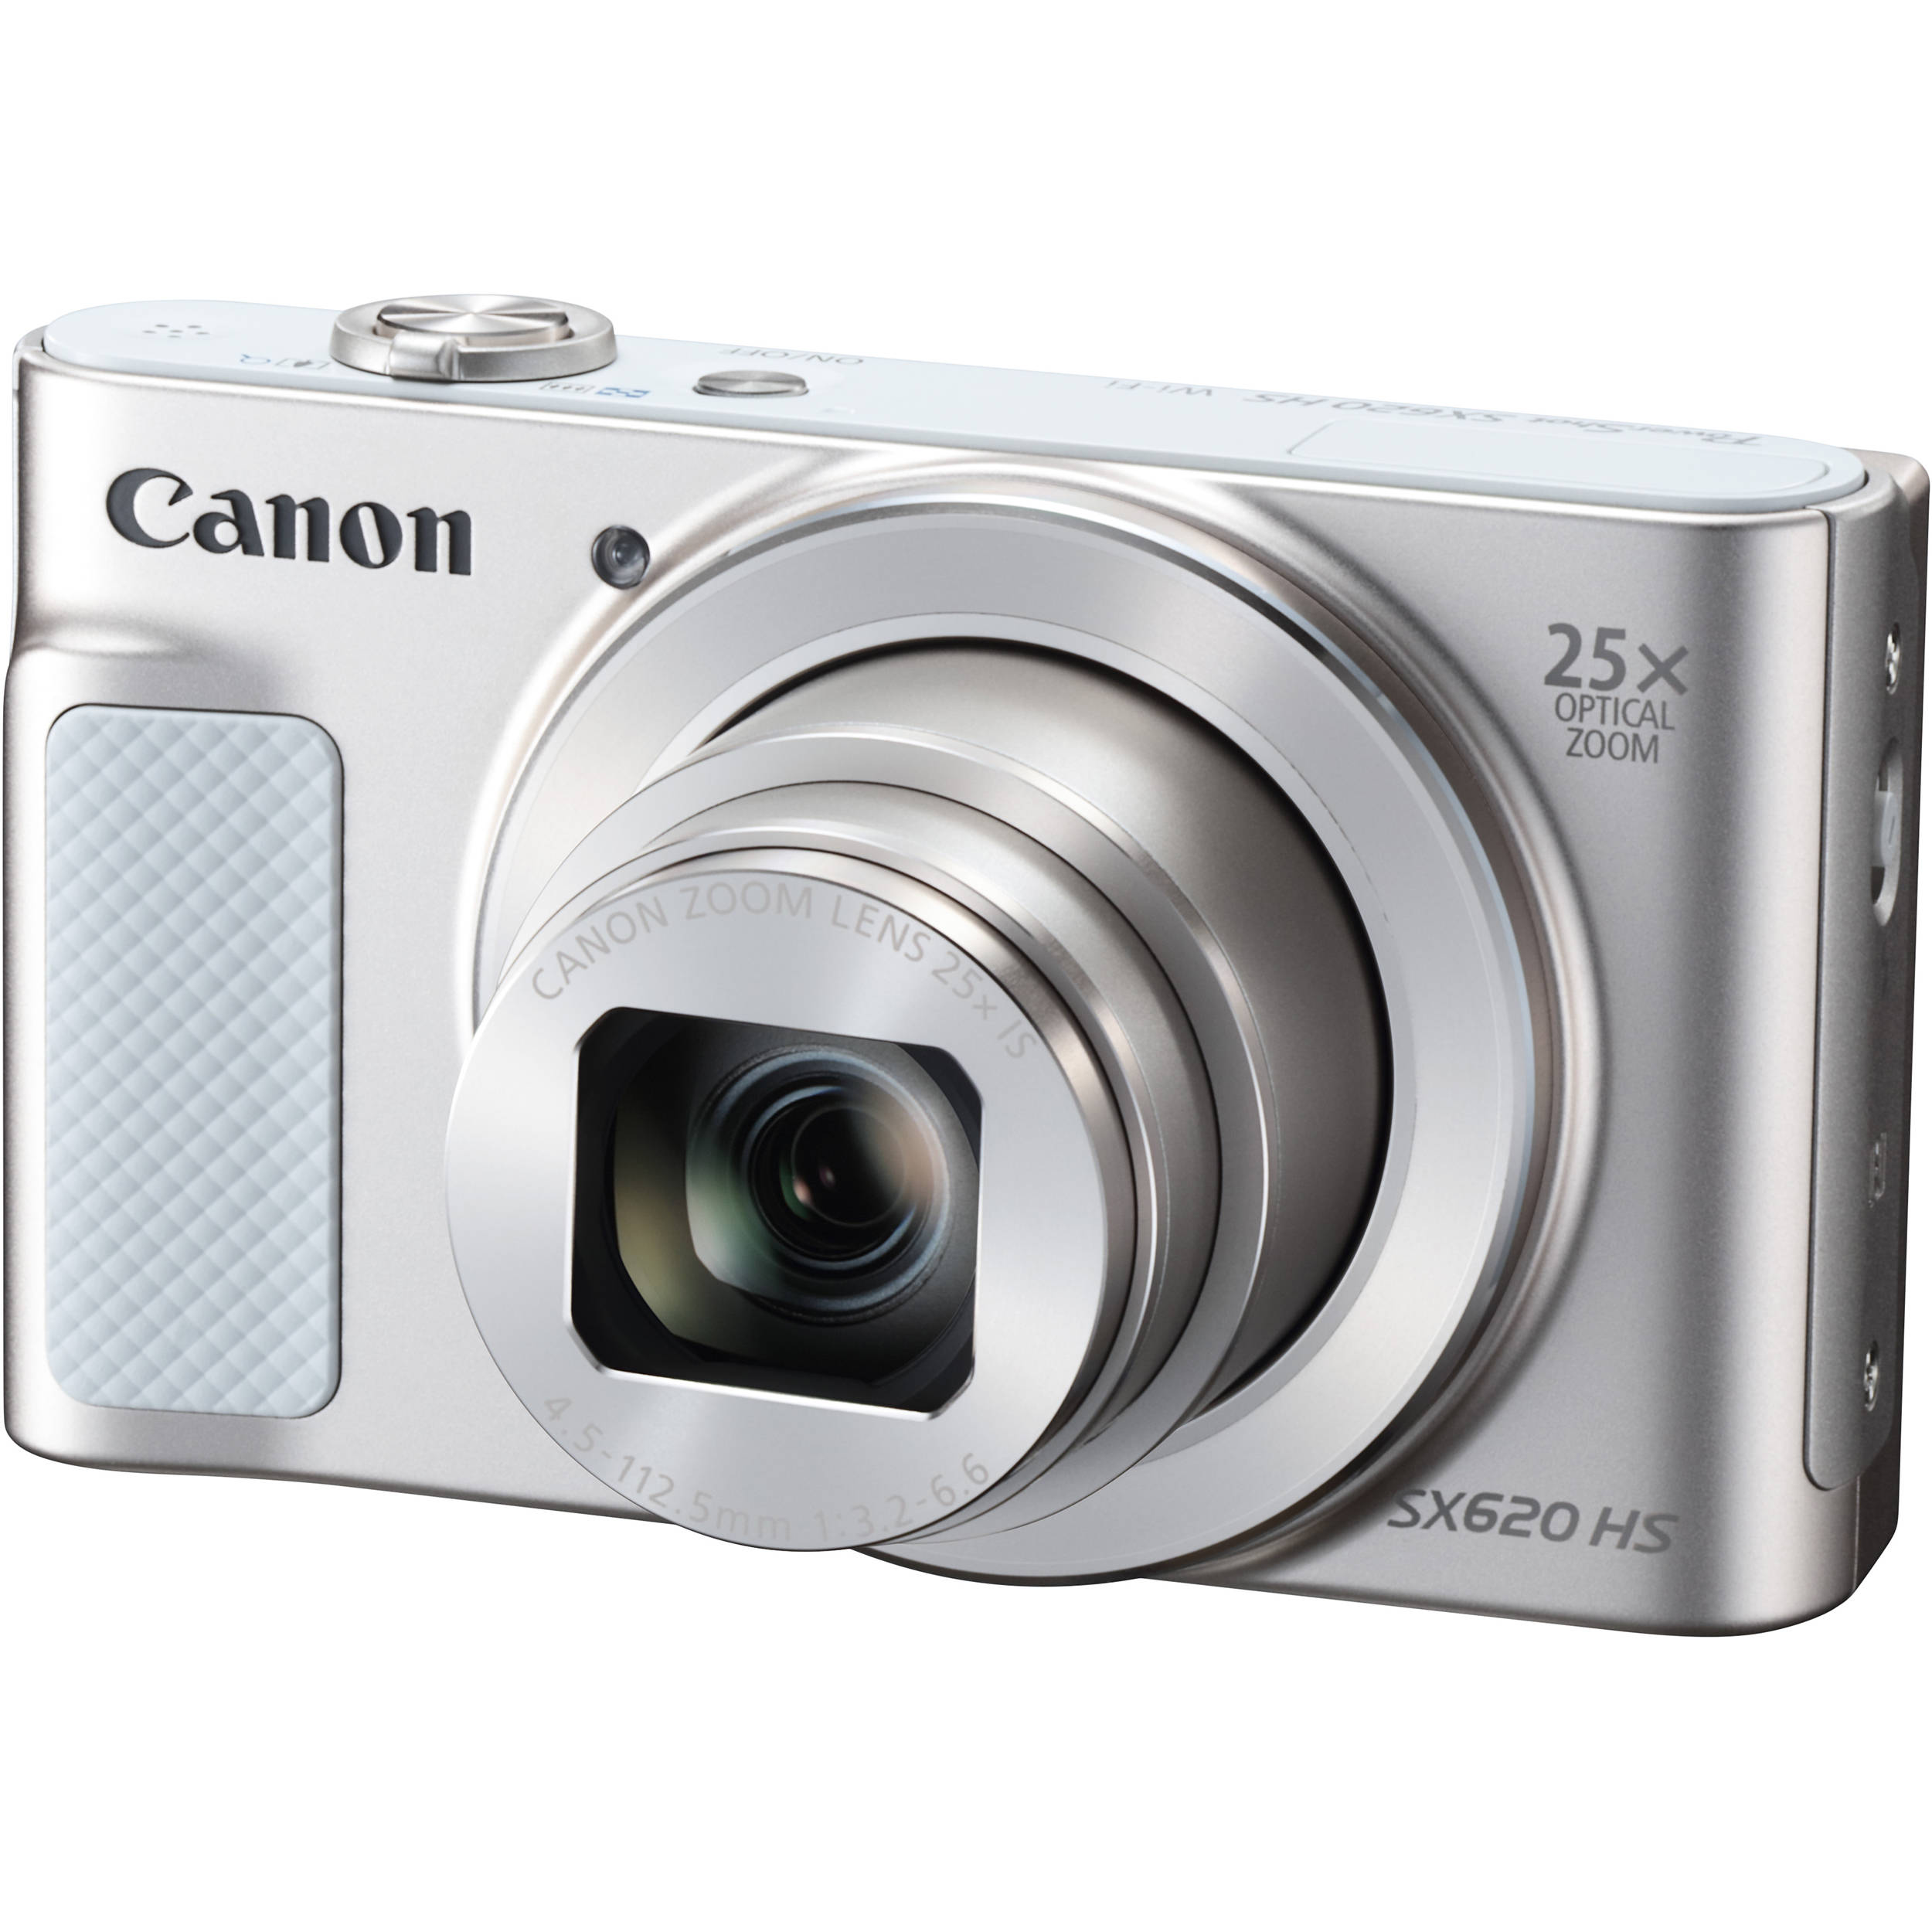 how to download photos from canon camera